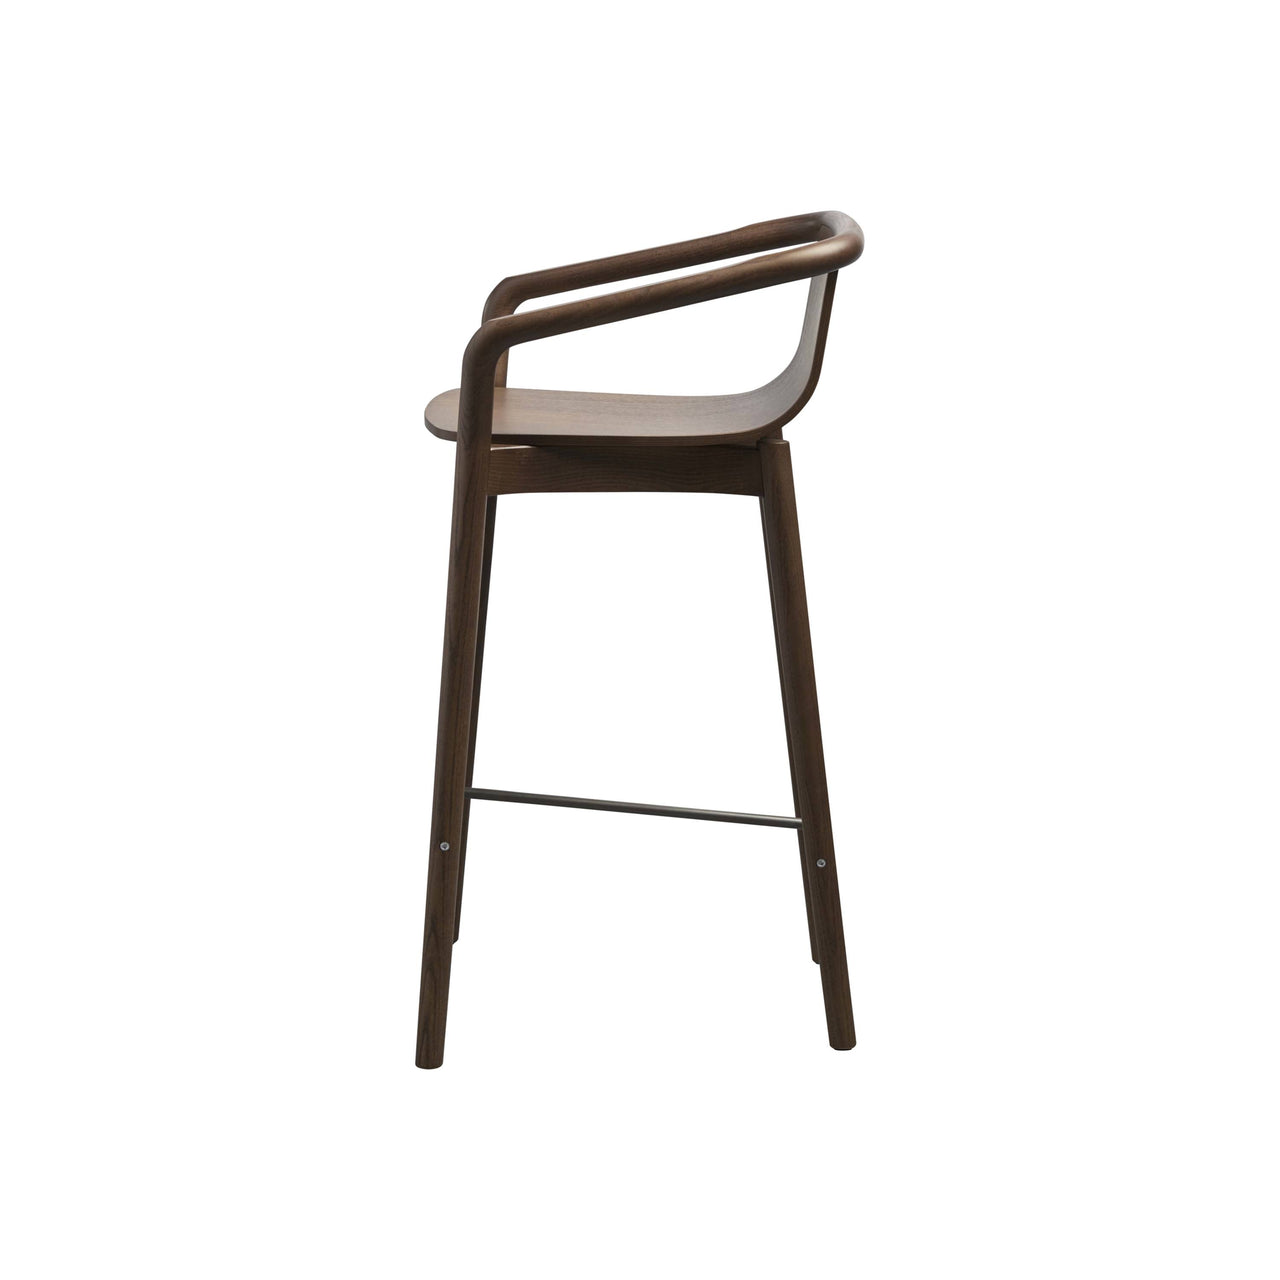 Thomas Bar + Counter Stool: Counter + Walnut Stained Ash + Black